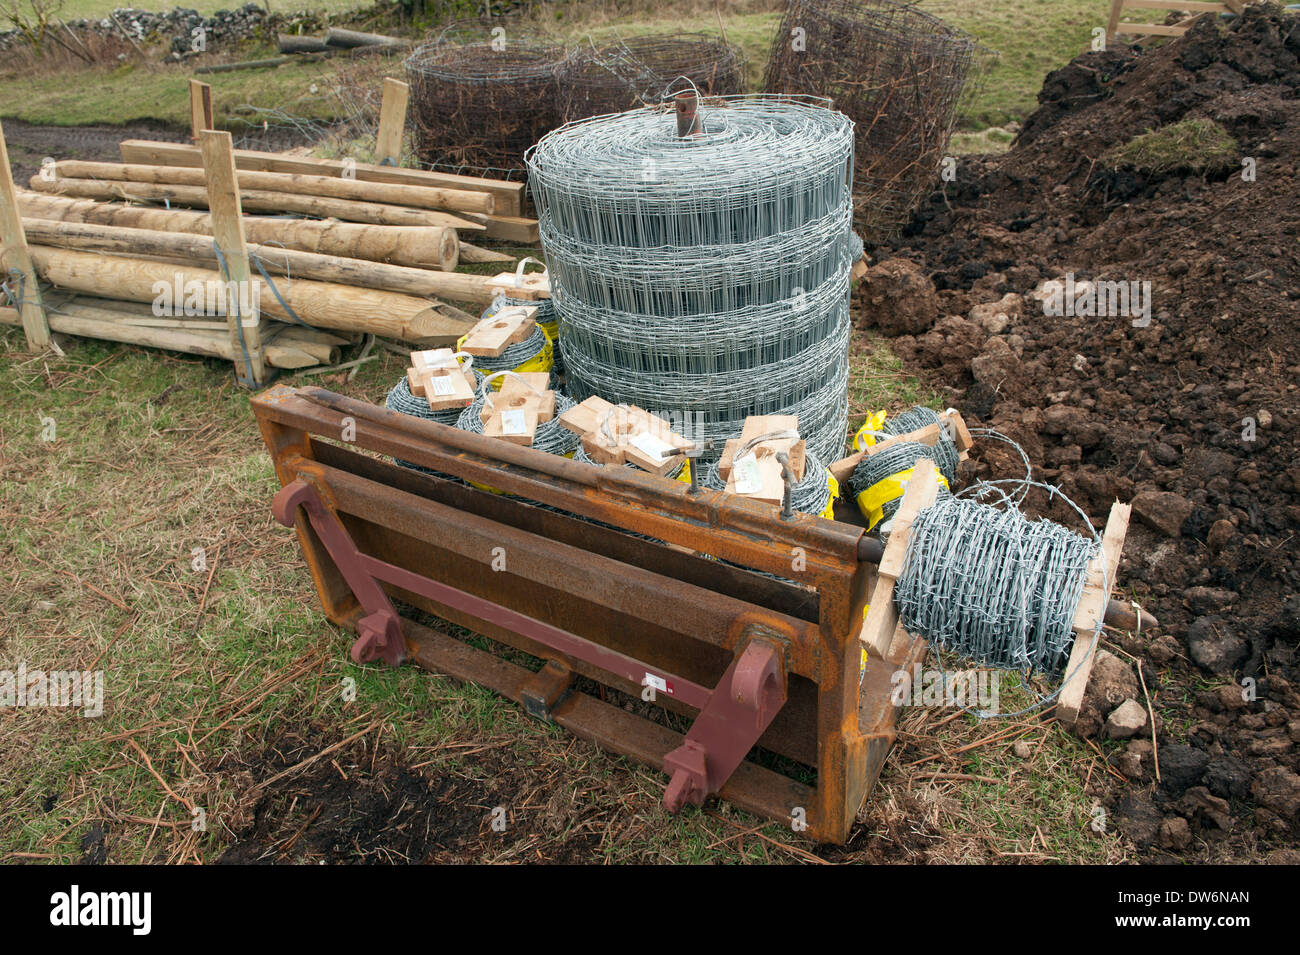 200 meter rolls of High tensile grade A barbed wire wire fencing and wooden posts on a tractor cradle attachment - Stock Image